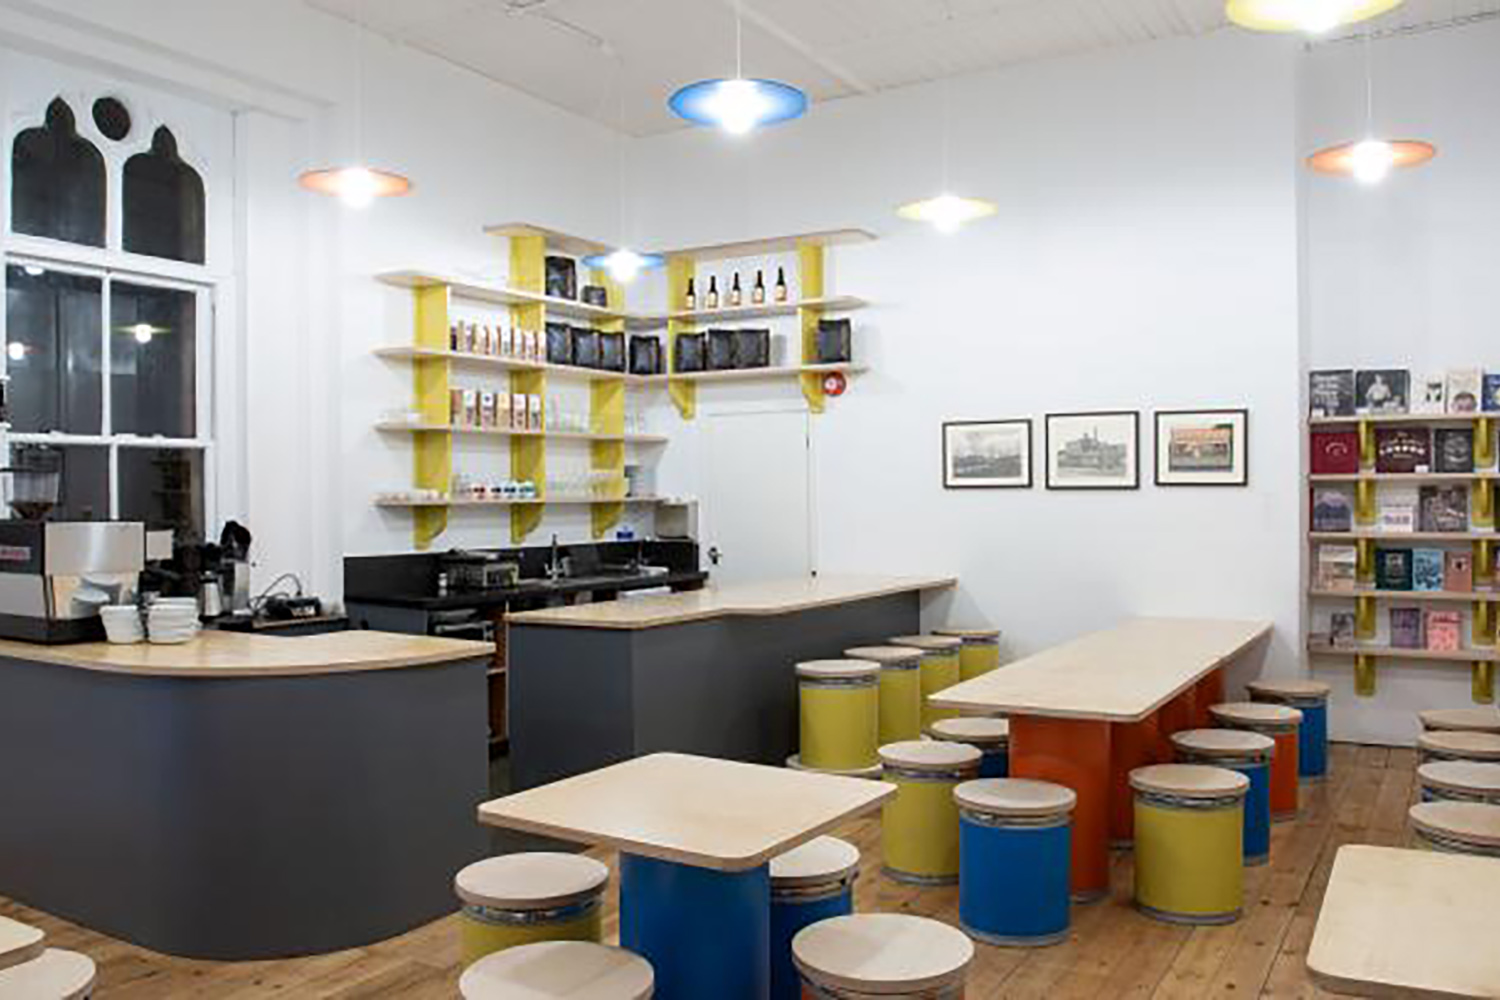 Supper Club in the new Nunnery Cafe